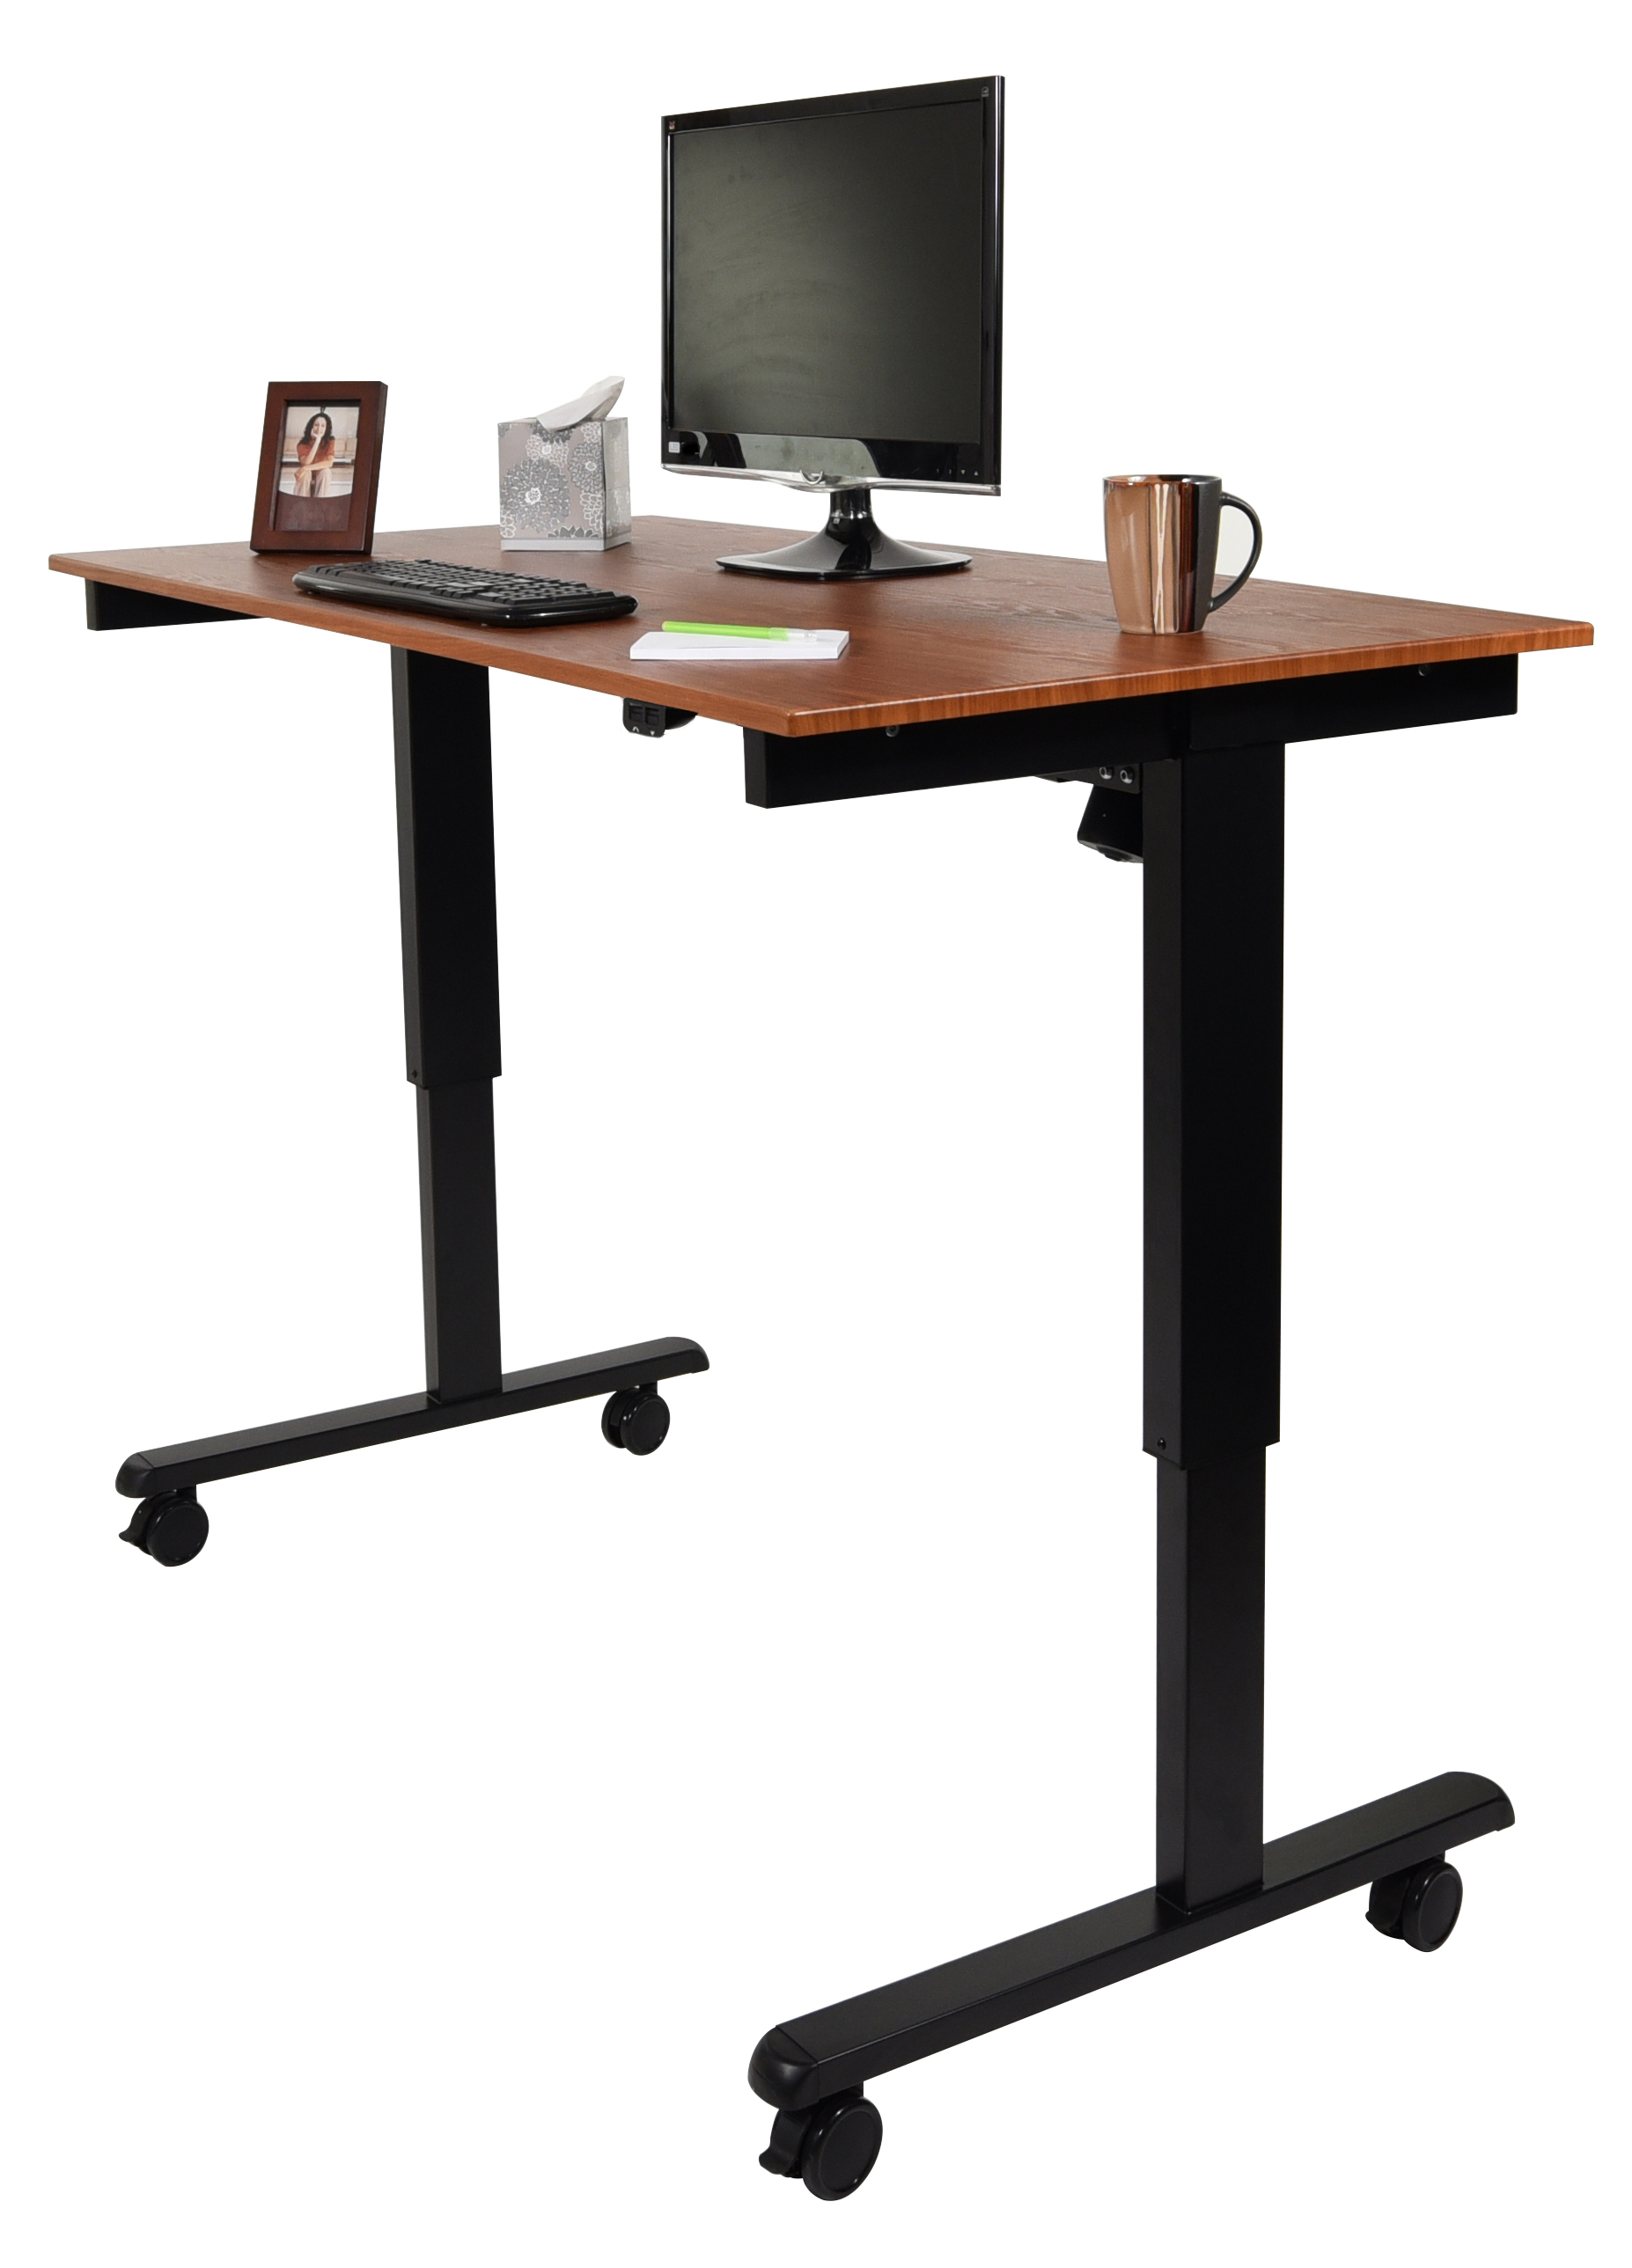 Luxor STANDE-60-BK/TK  60in.  Electric Standing Desk Black/Teak